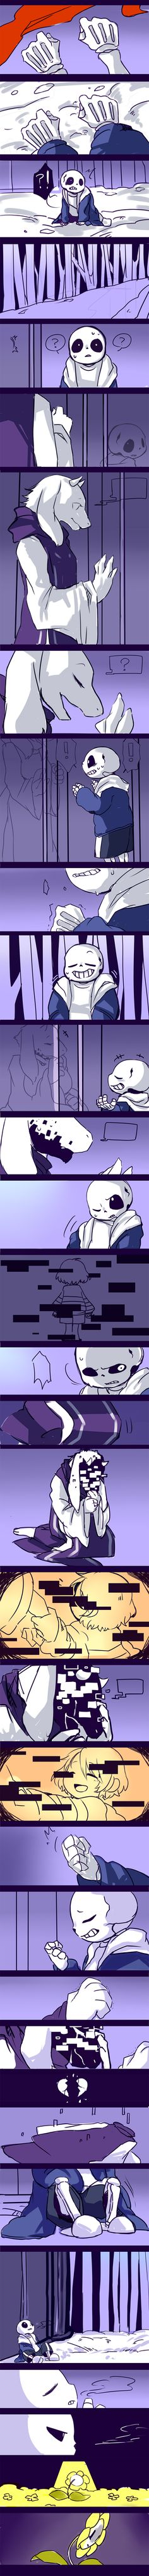 After the game - Sans - comic 2/2